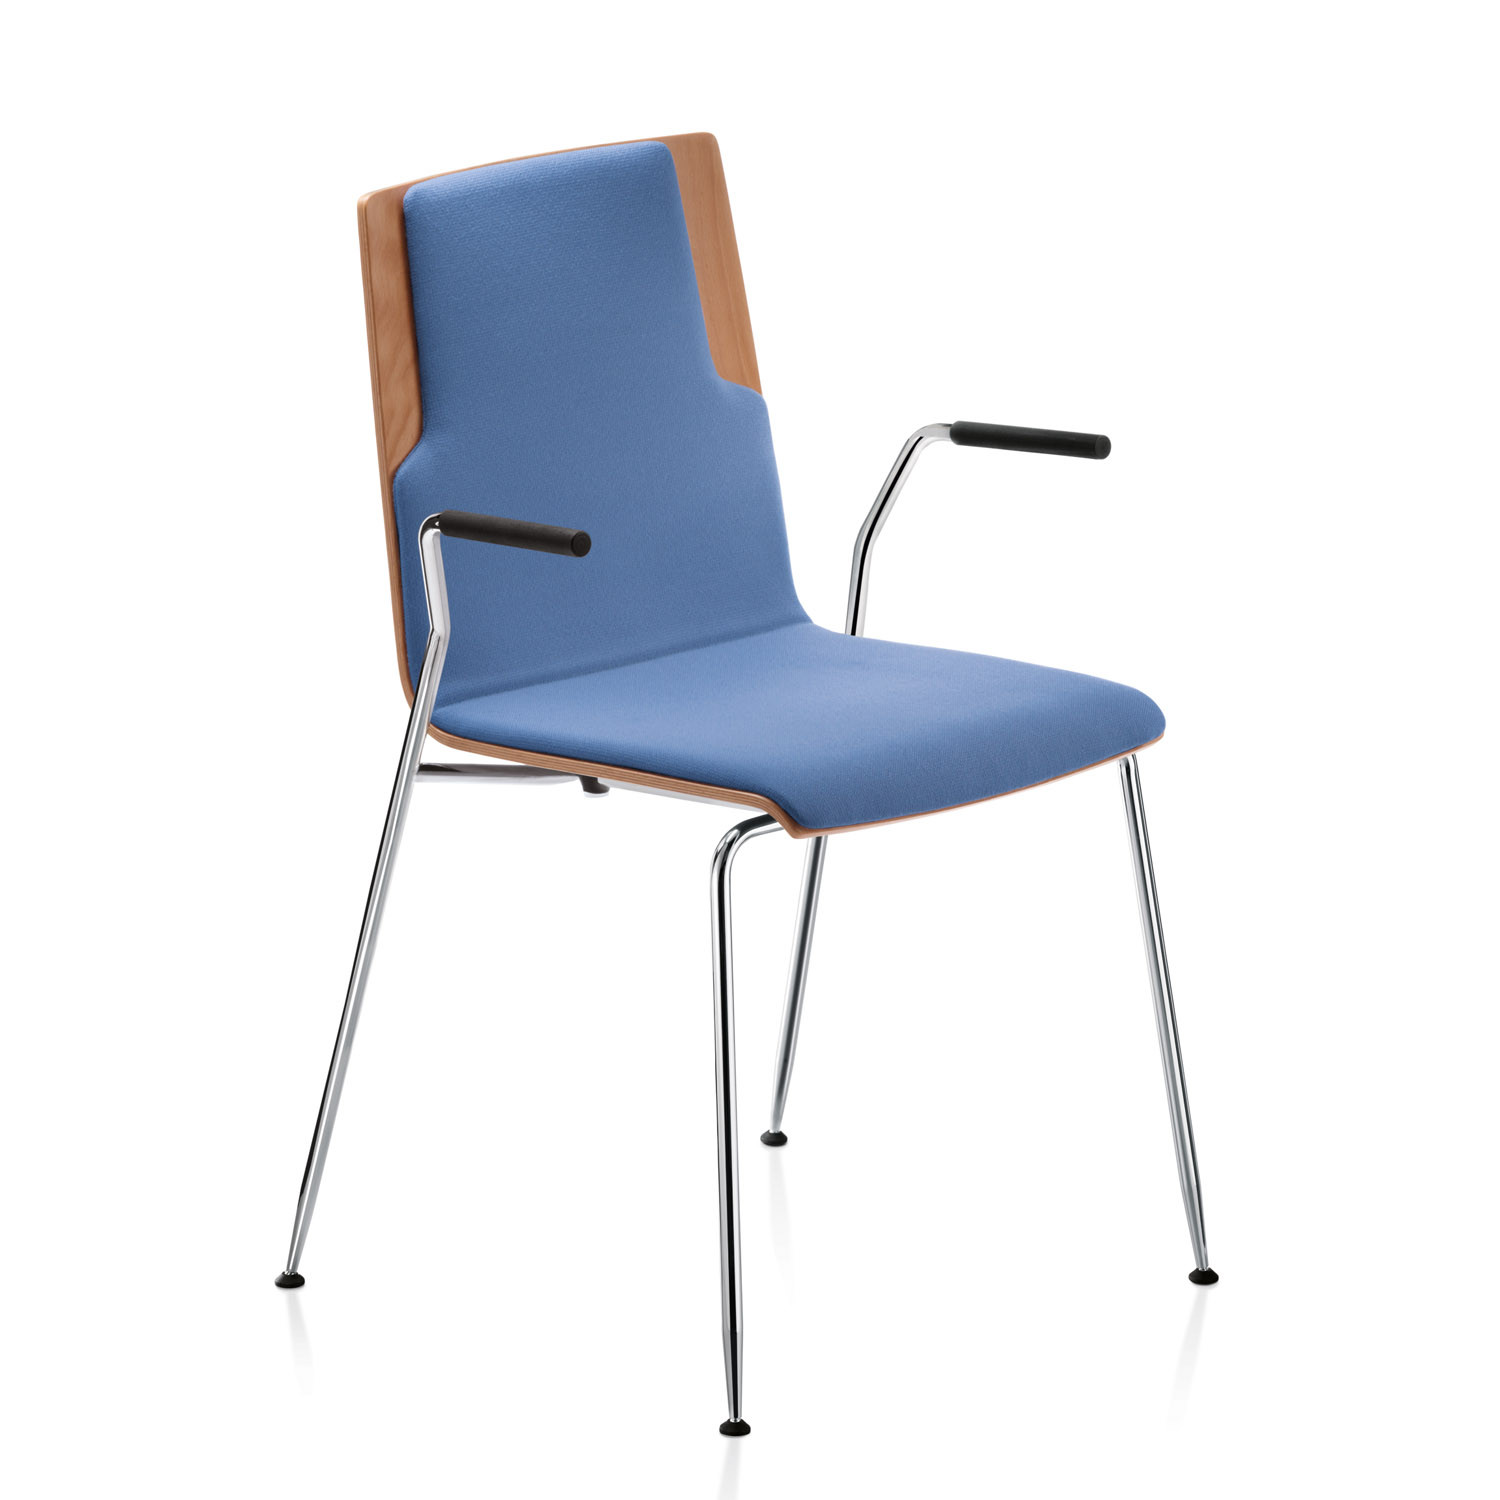 Meet Chair with Armrests